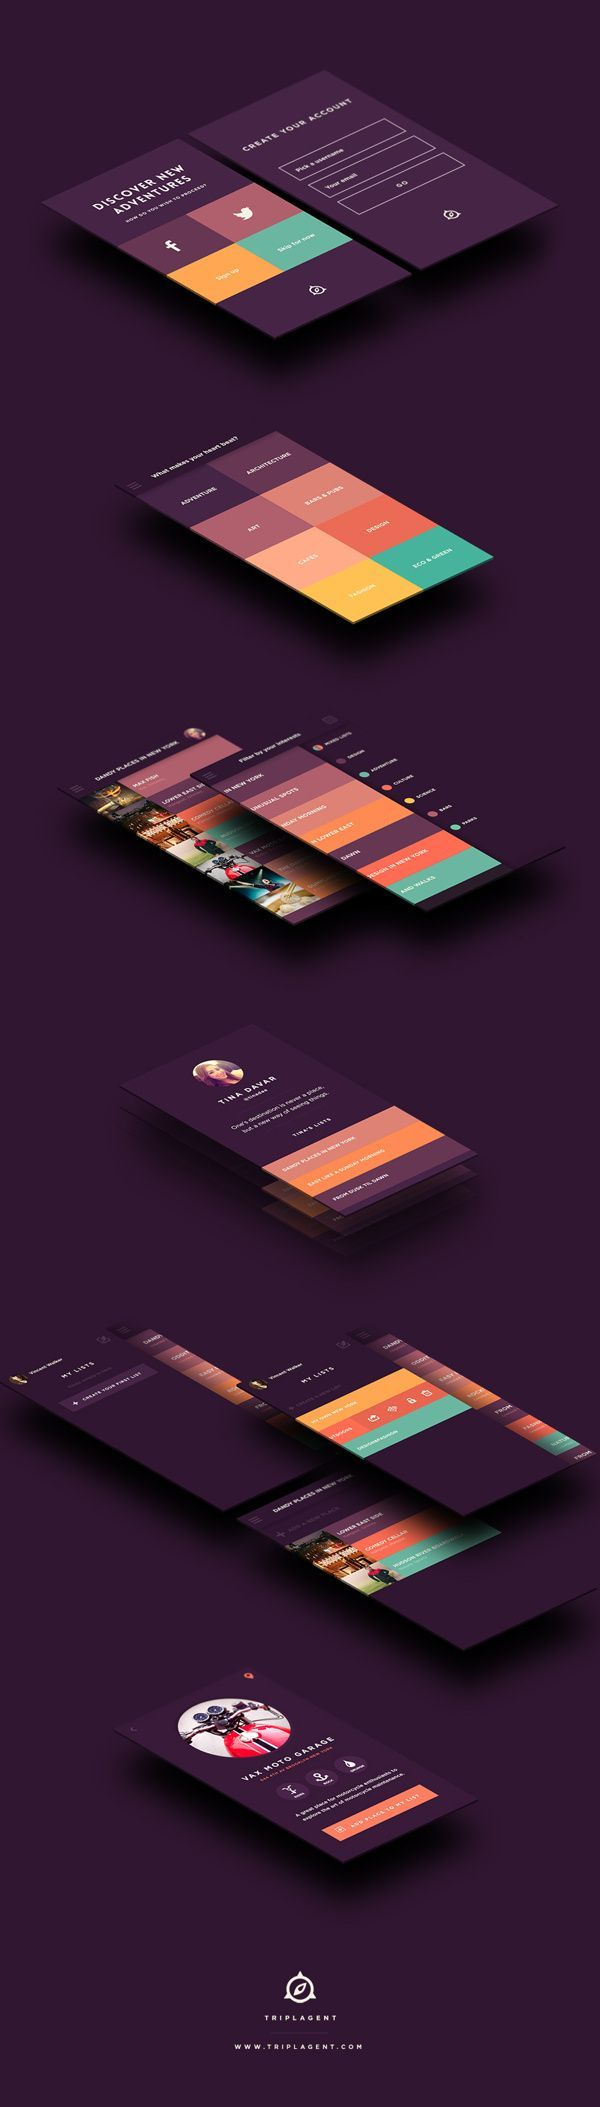 "TriplAgent *** ""TriplAgent - Mobile design and branding for a travel app where people can find the best places in the world based on their interests."" by Taras Kravtchouk, via Behance ***"